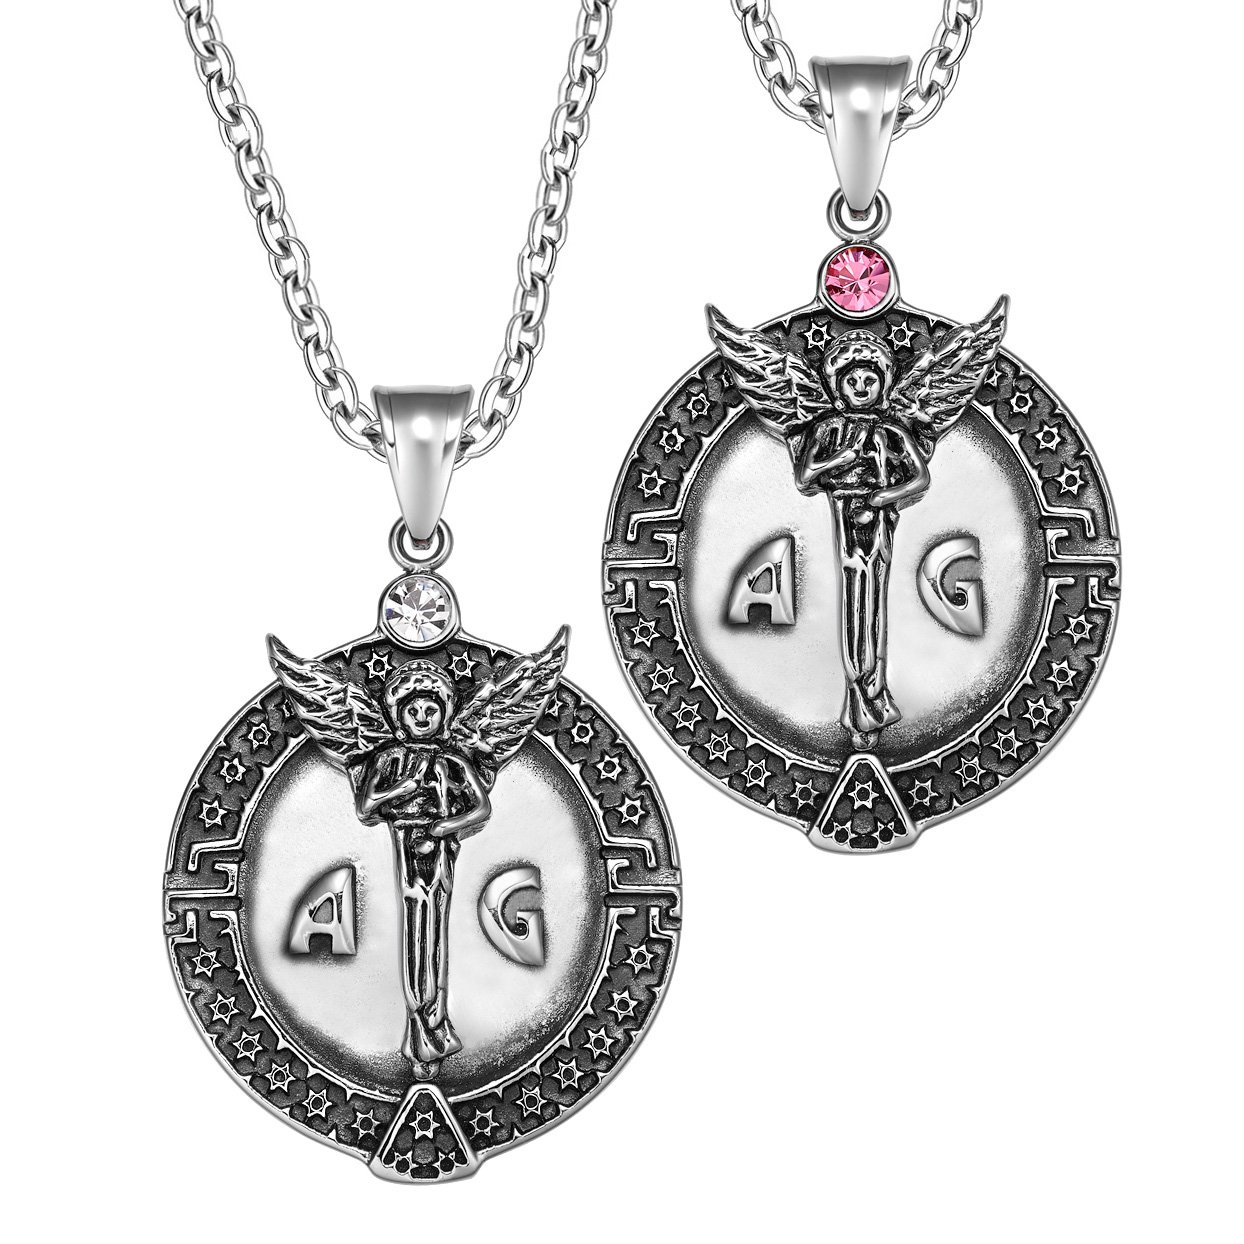 Archangel Michael Star of David Accents Love Copules or Best Friends Amulets Set Pink White Necklaces